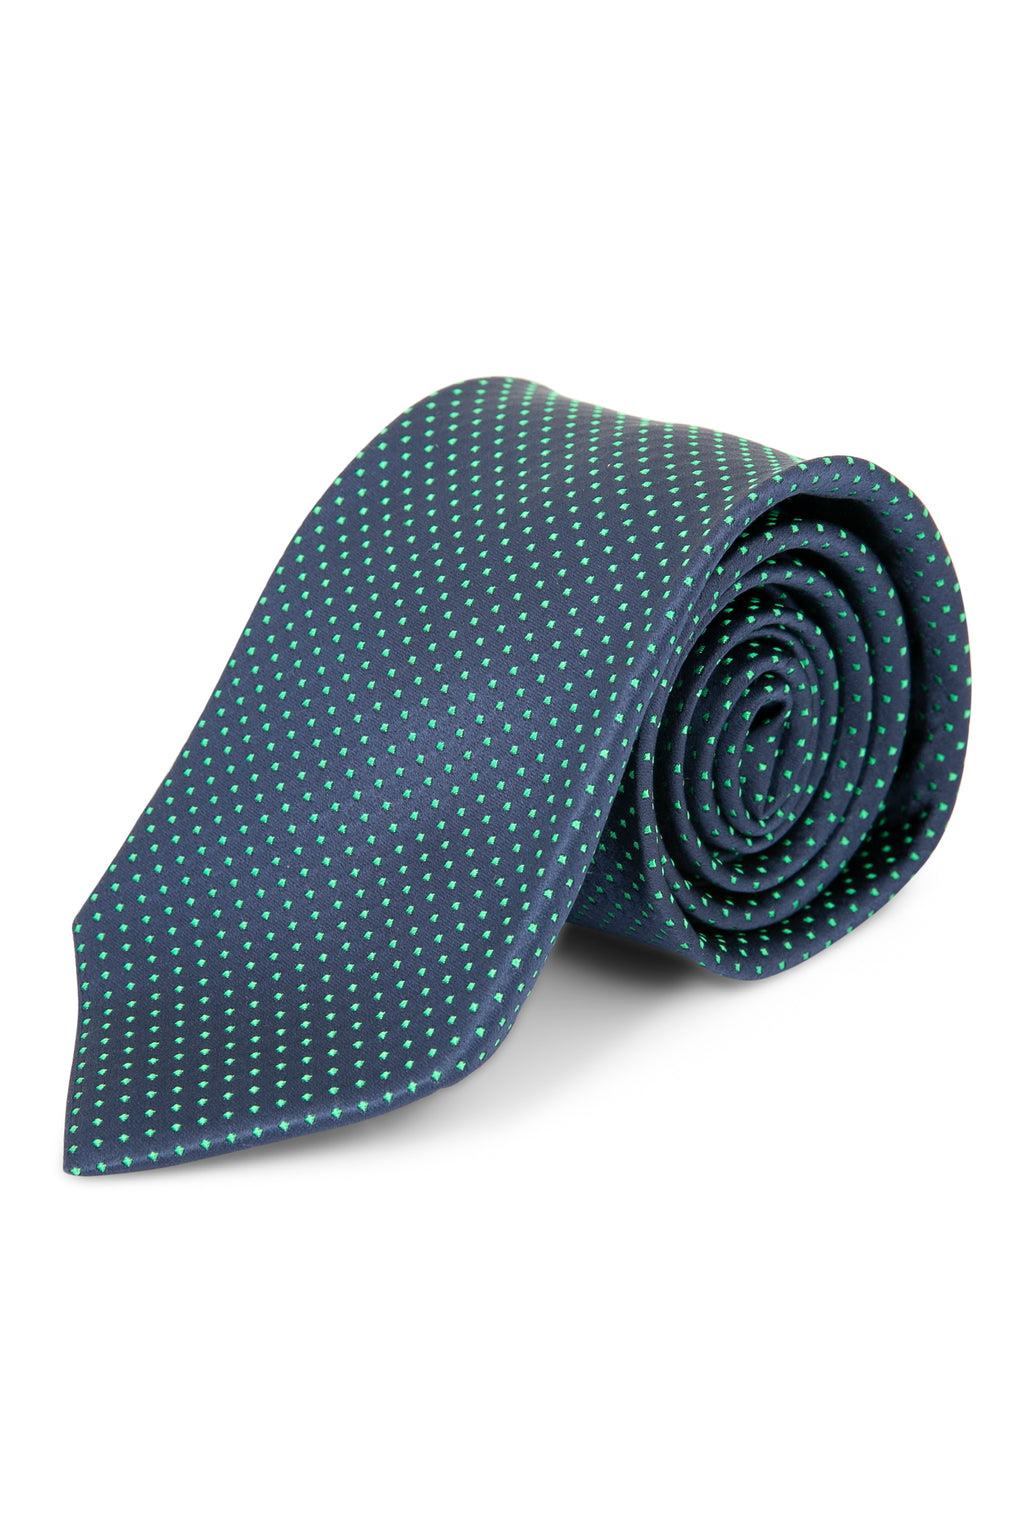 Vintage Hugo Boss Pin-Dot Design Tie